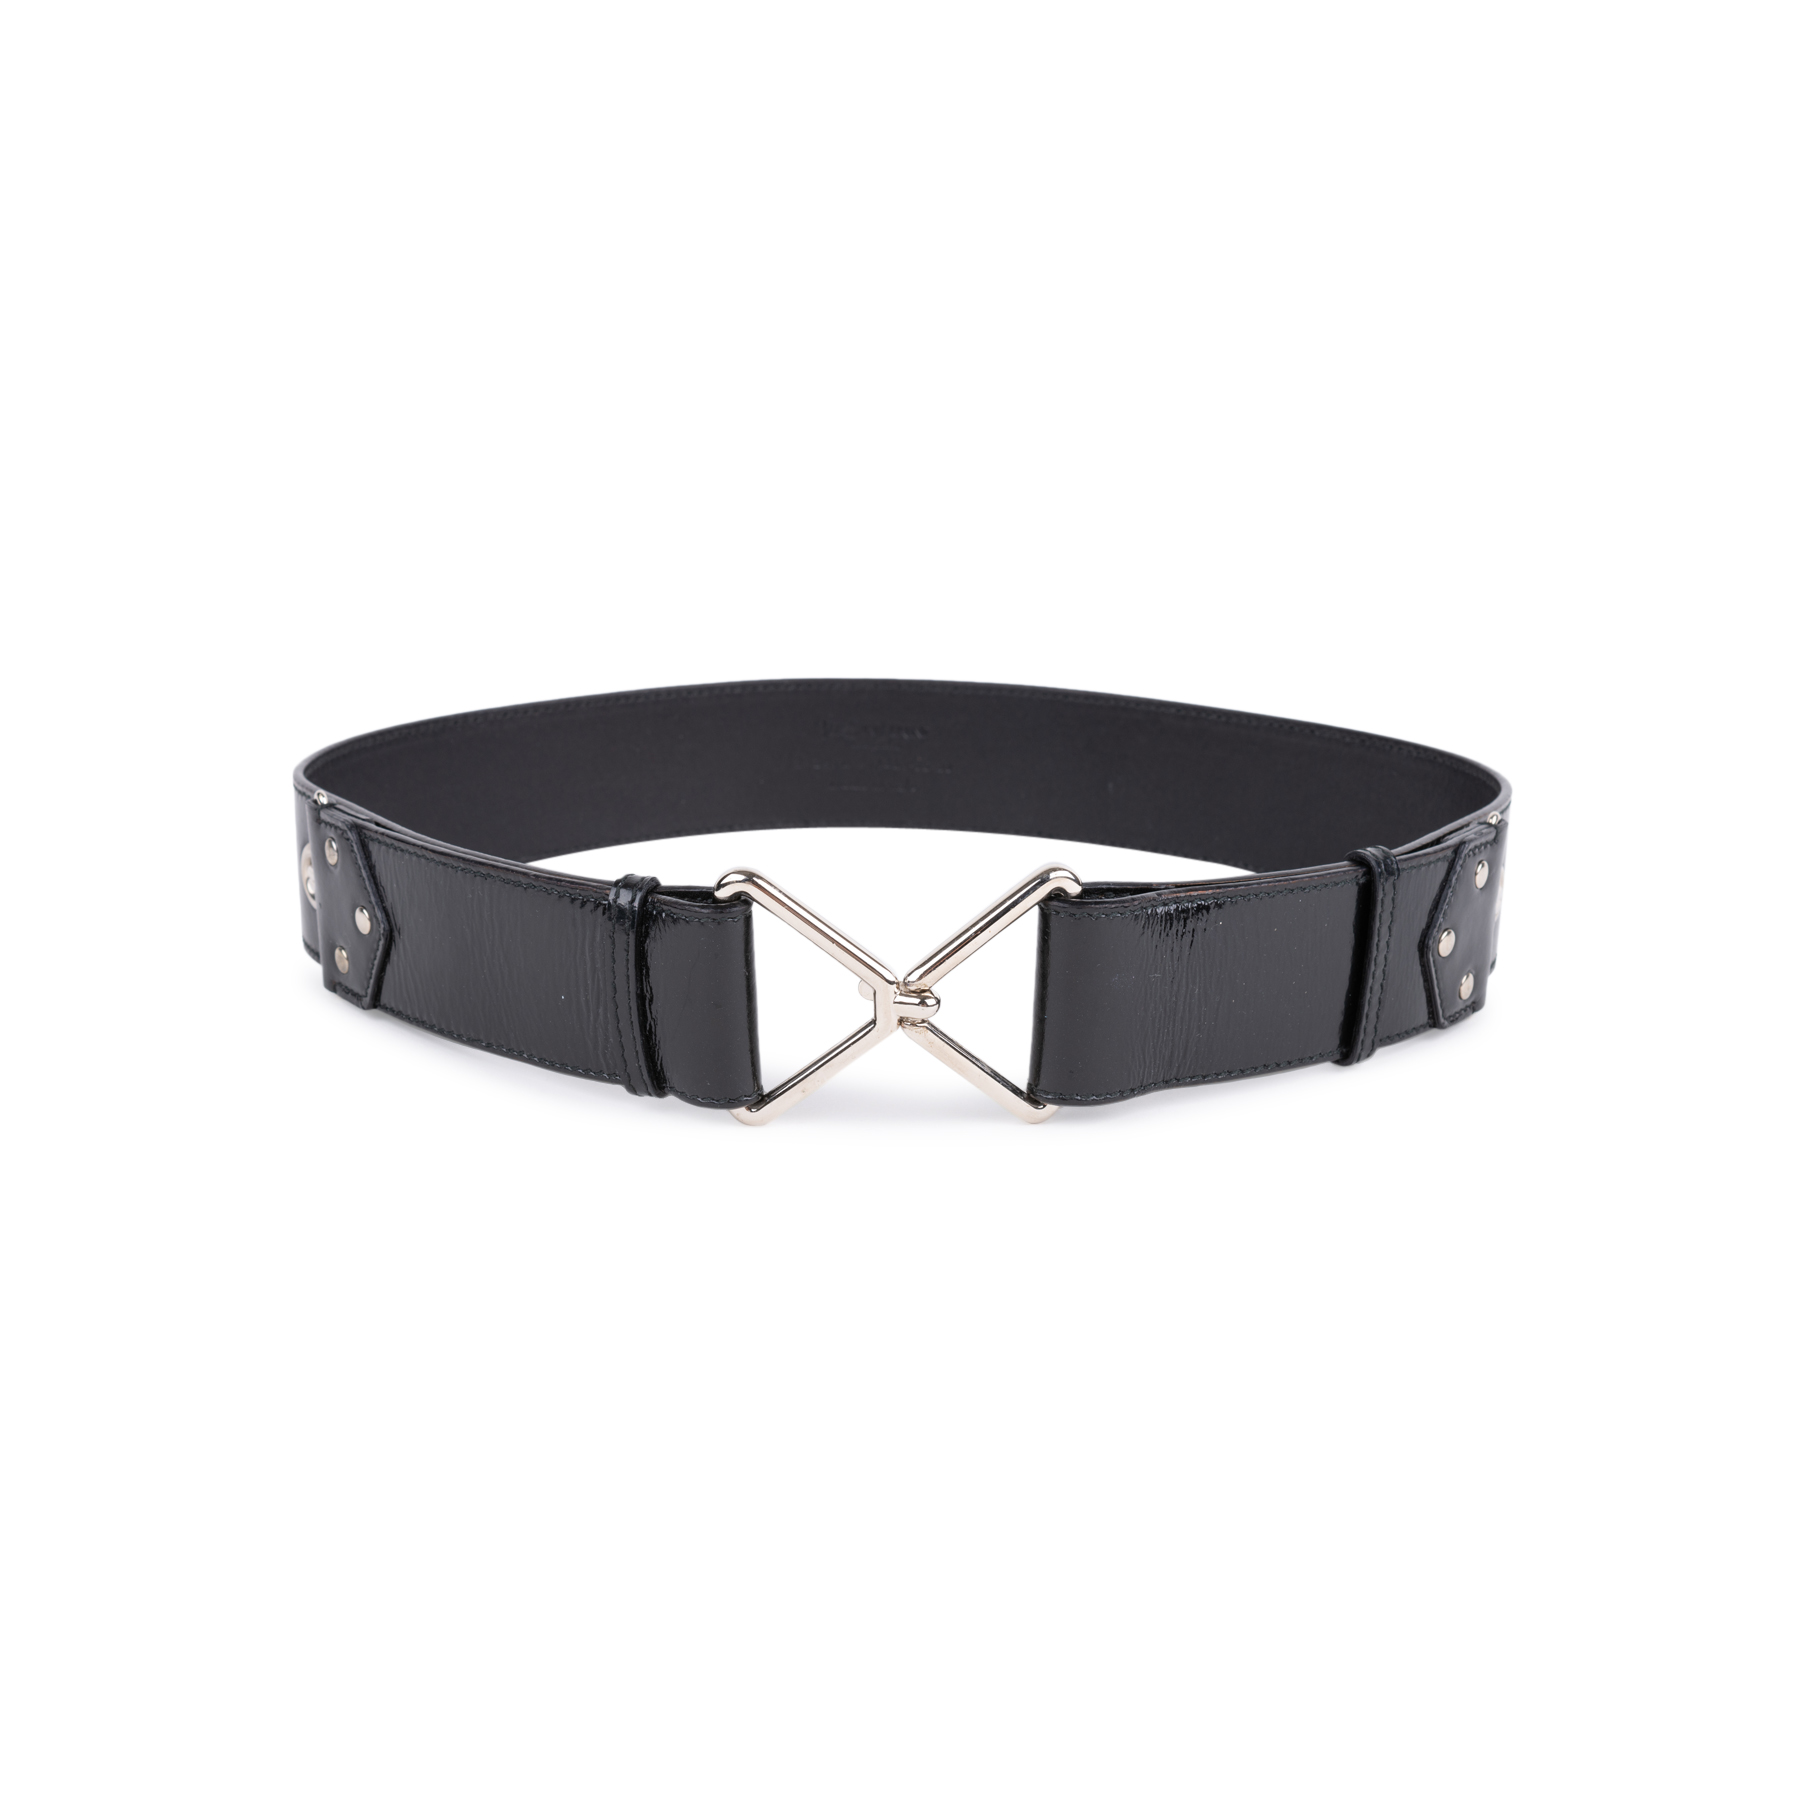 3a3fade03c13 Authentic Second Hand Yves Saint Laurent Patent Hook Rivet Belt  (PSS-034-00027)